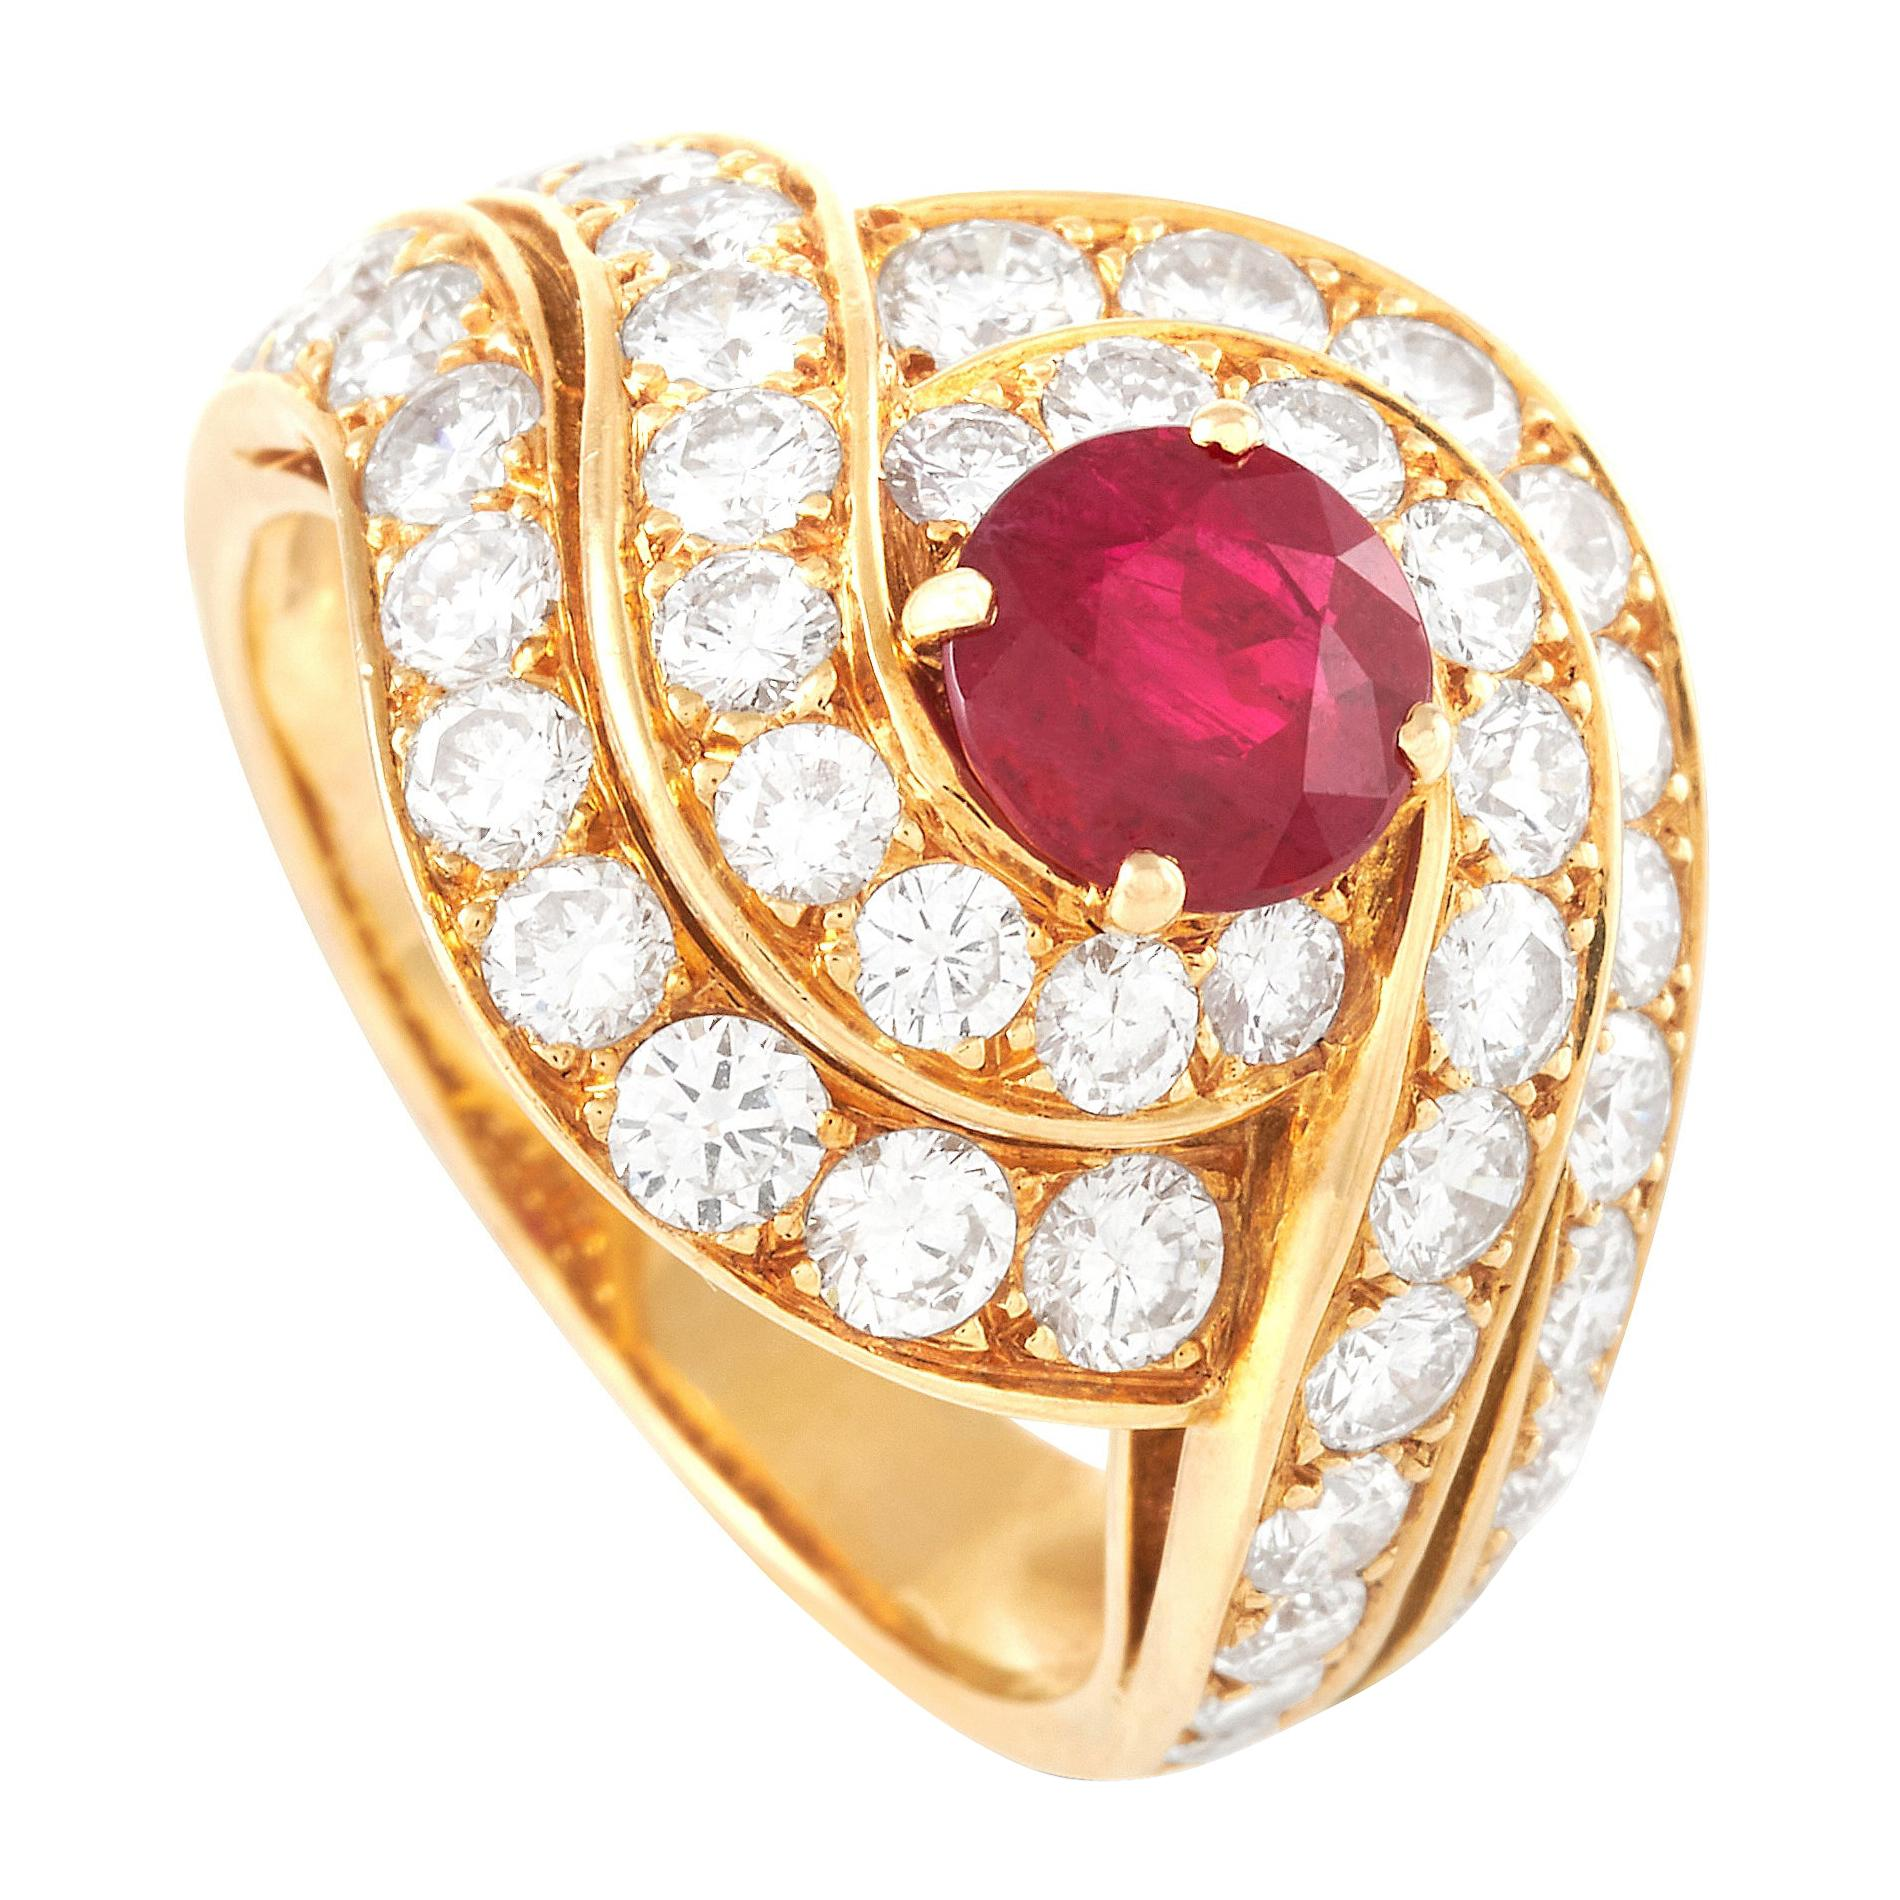 Van Cleef & Arpels 18K Yellow Gold 2.10 ct Diamond and 0.95 ct Ruby Ring